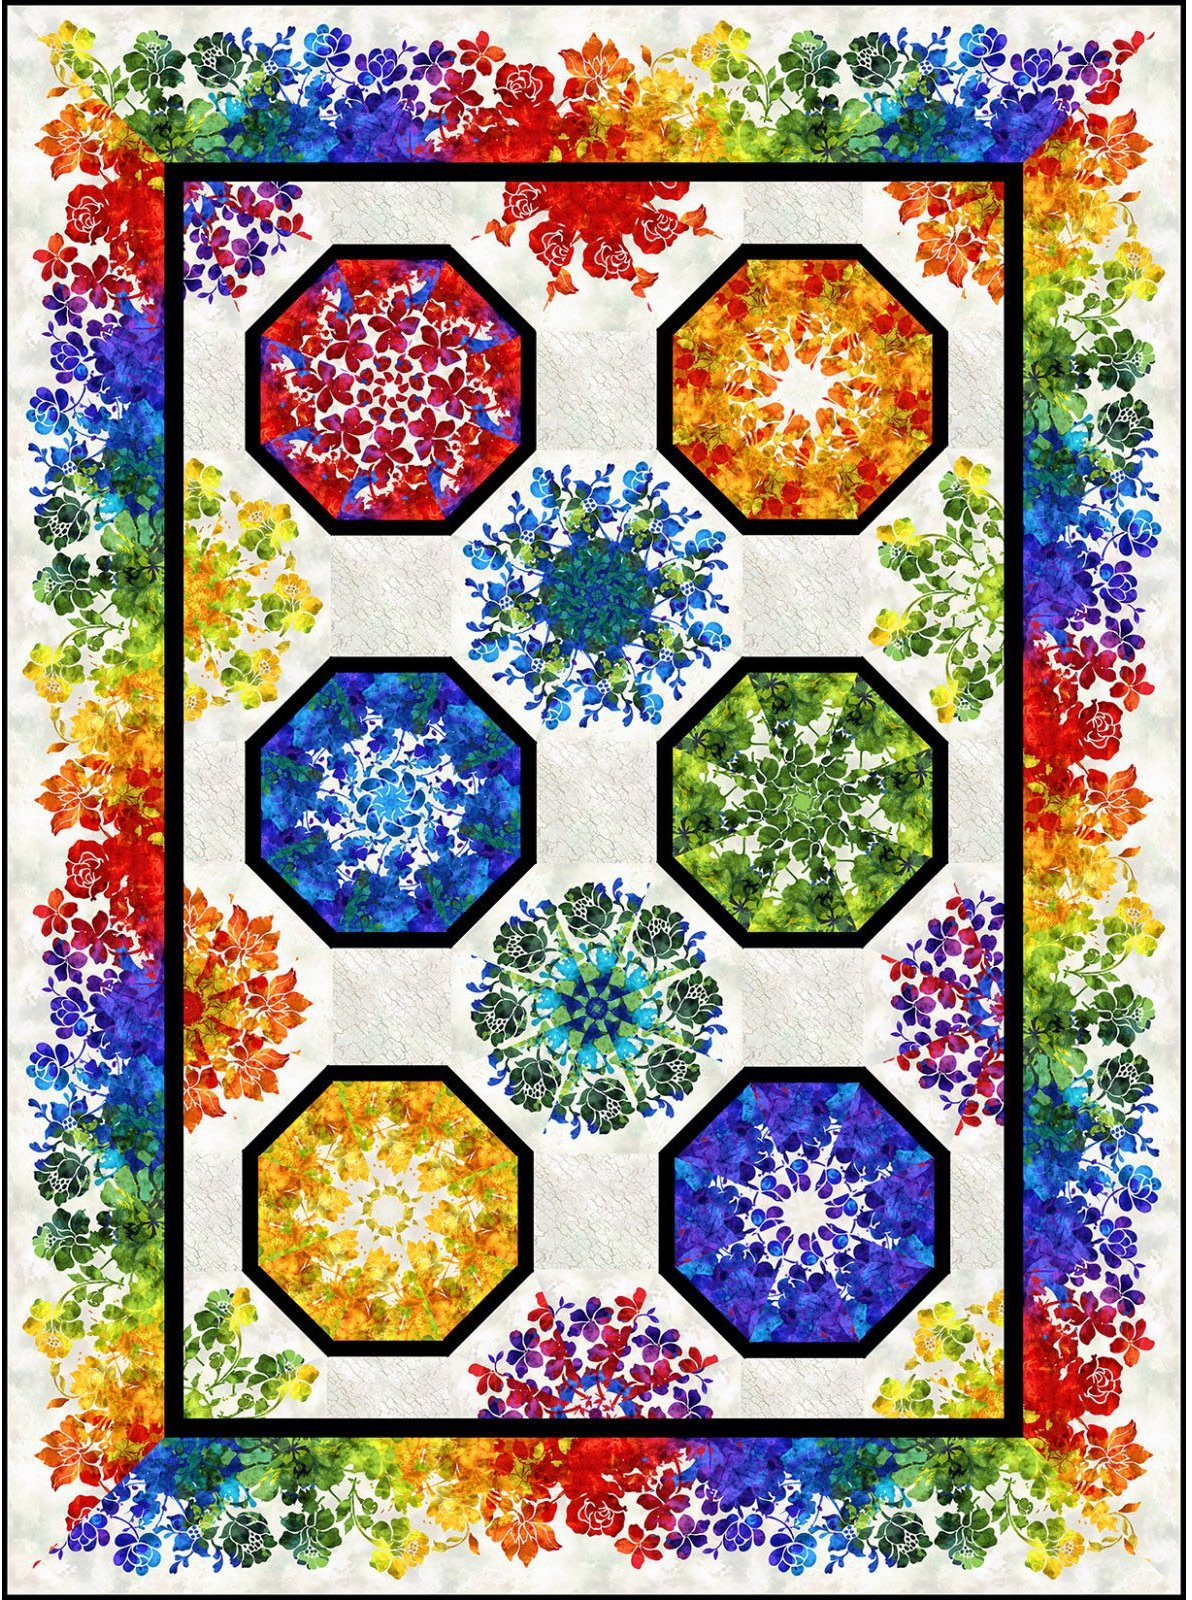 INTH-SS K PATT - THE SUNSHINE COLLECTION - SUNSHINE ONE FABRIC KALEIDOSCOPE QUILT PATTERN - ARRIVING IN FEBRUARY 2022